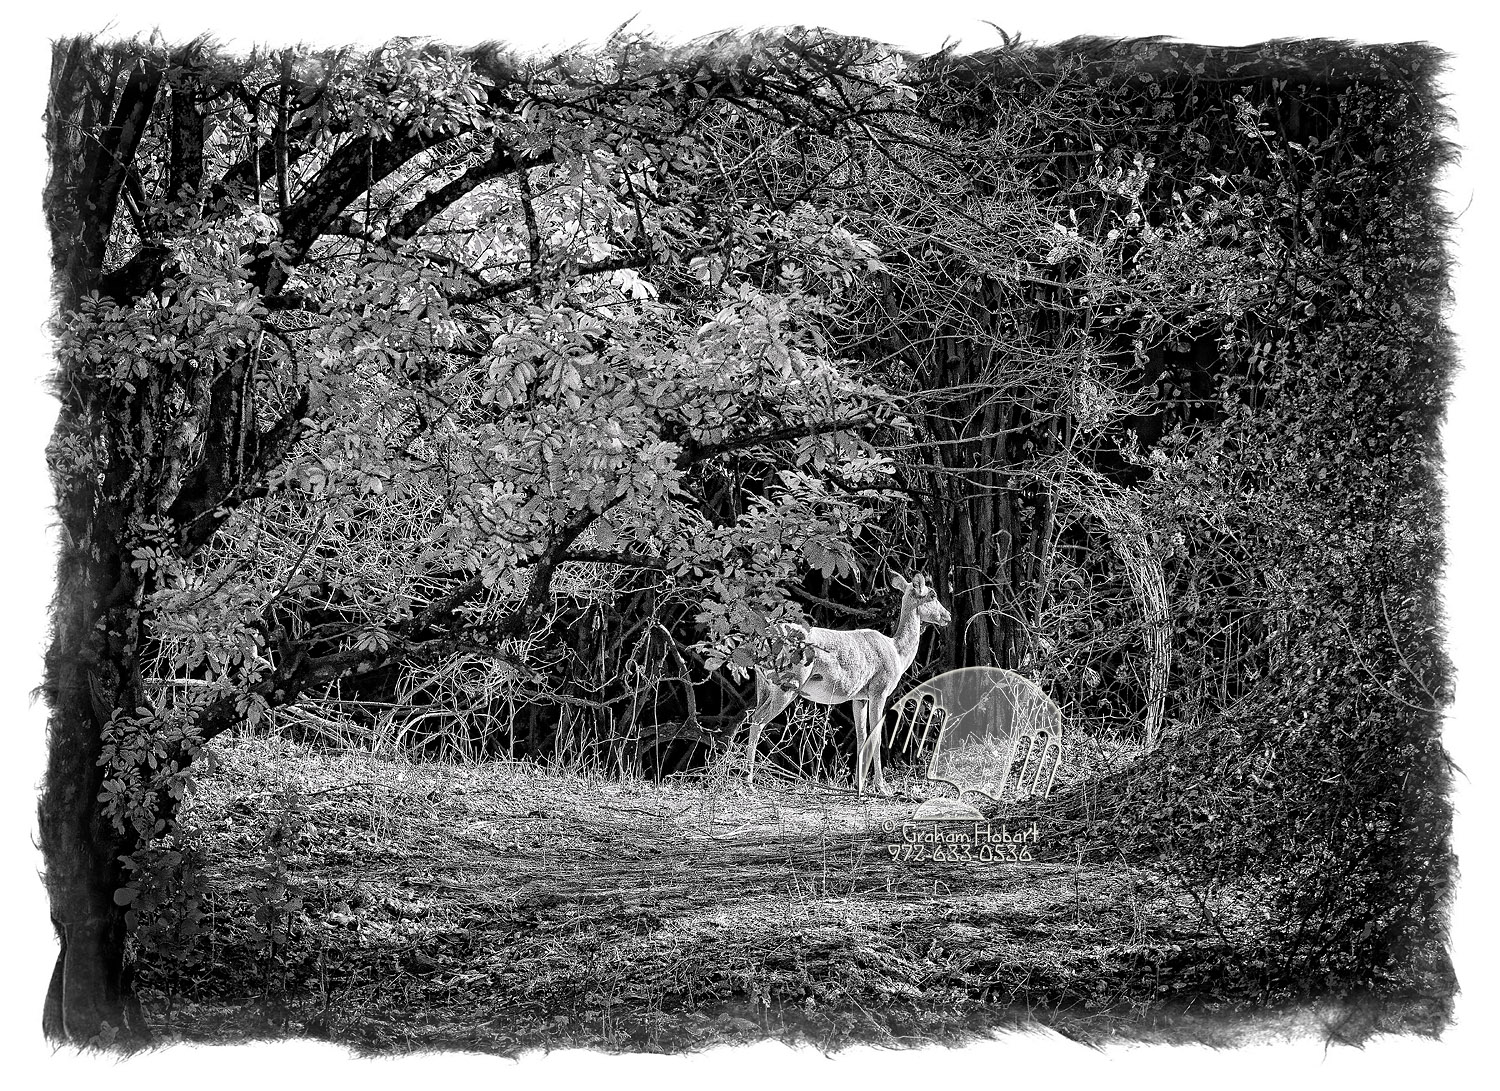 Female Impala In Thicket (2011) by In a Different Light in Regular Member Gallery